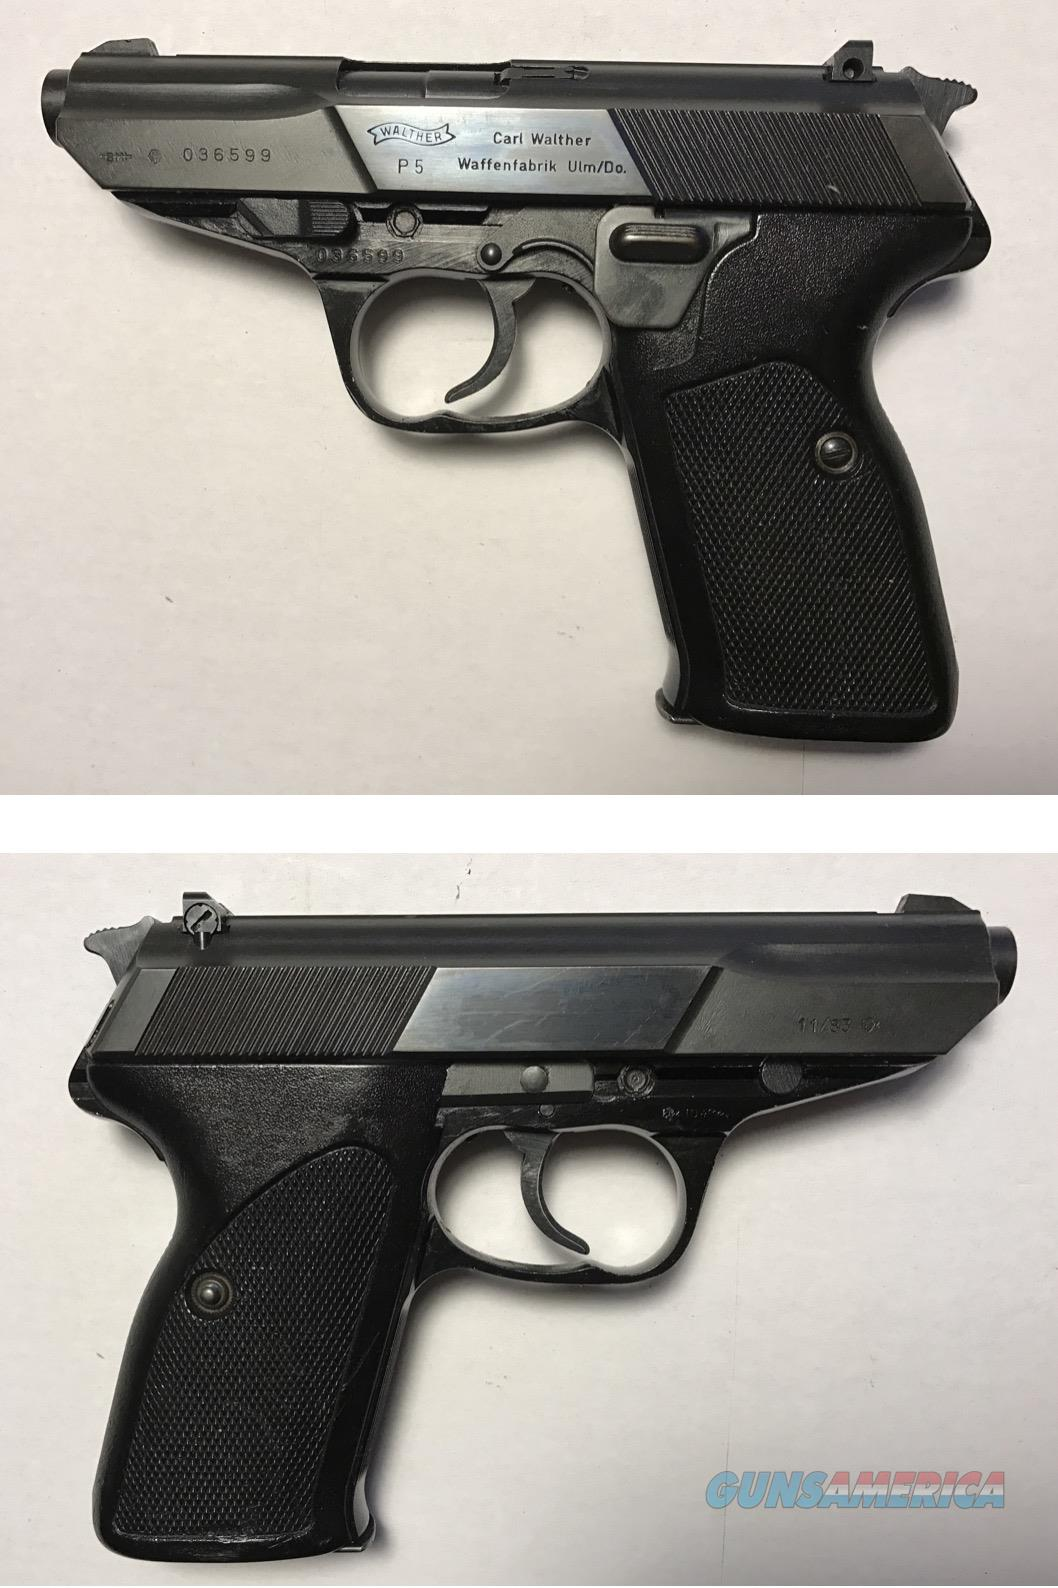 German Walther P5  Guns > Pistols > Walther Pistols > Post WWII > P5